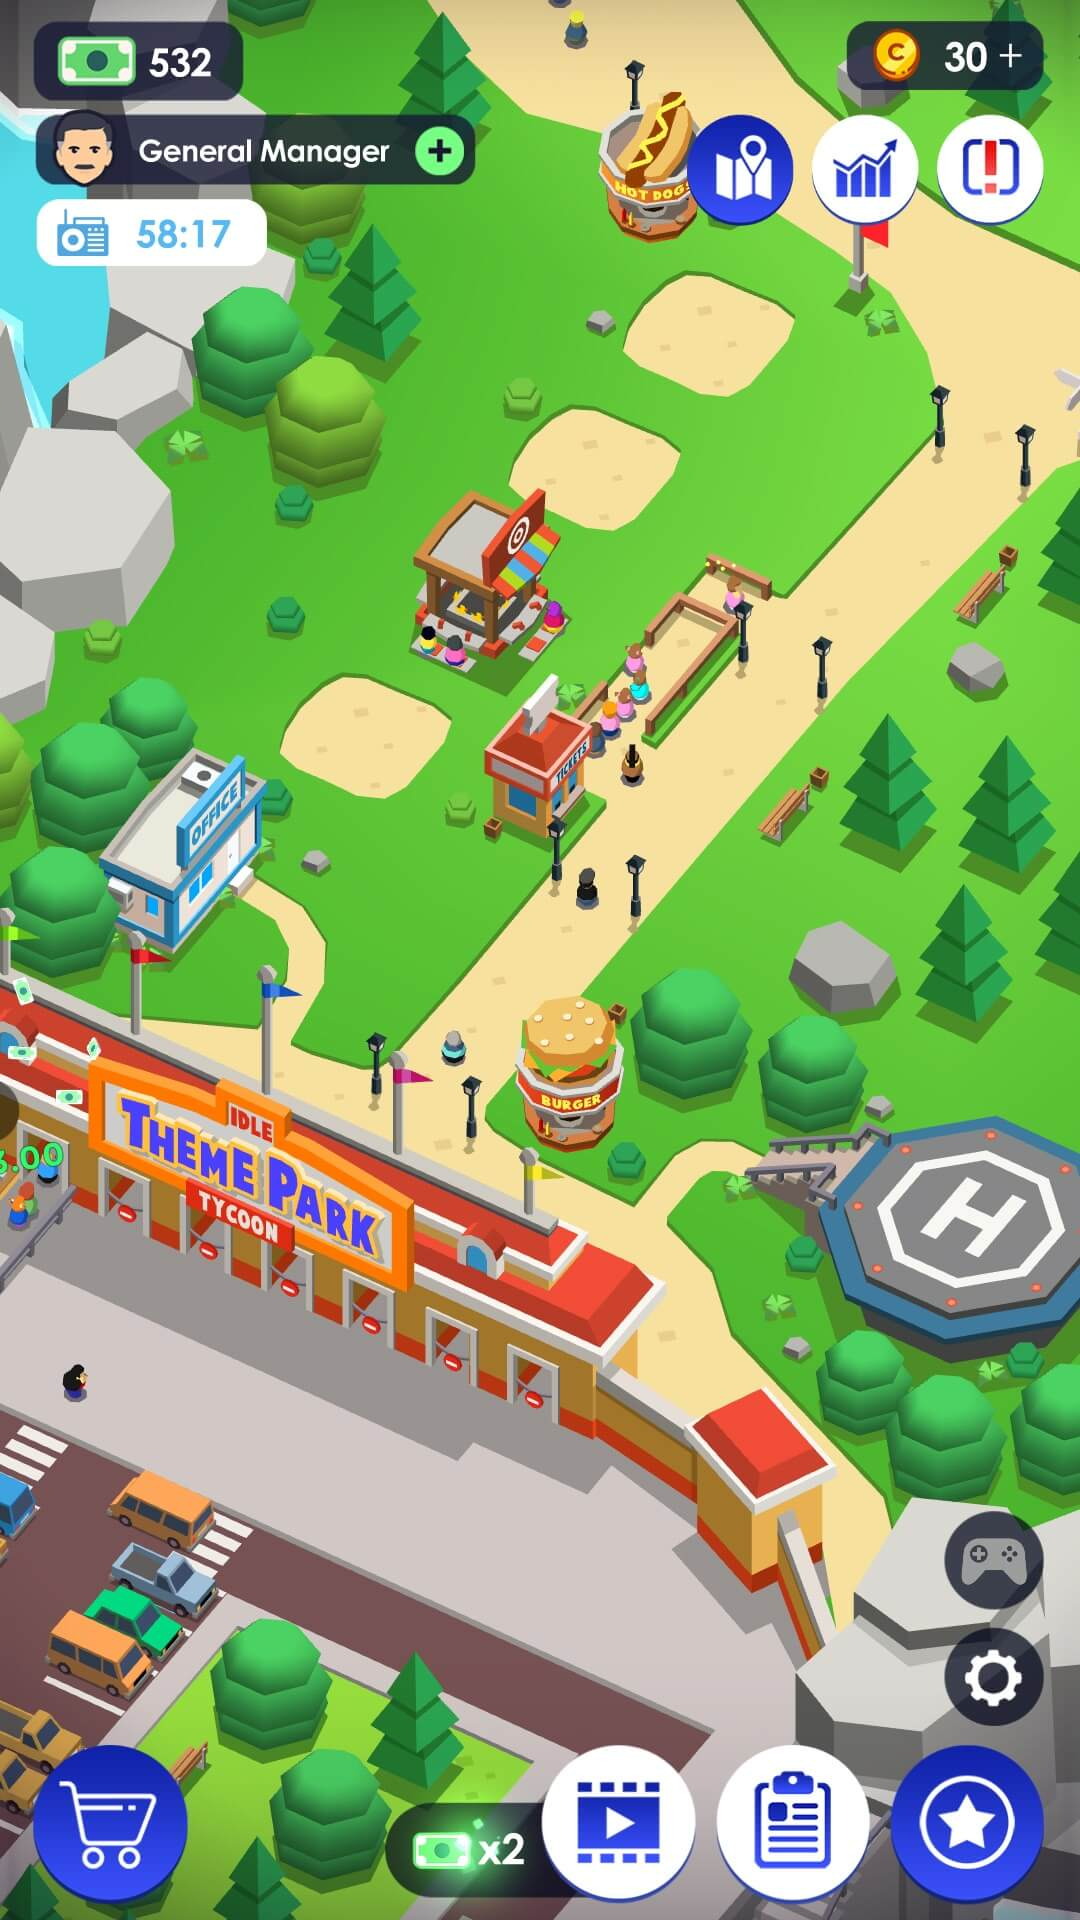 Idle Theme Park Tycoon - Recreation Game - Virtual Worlds Land!